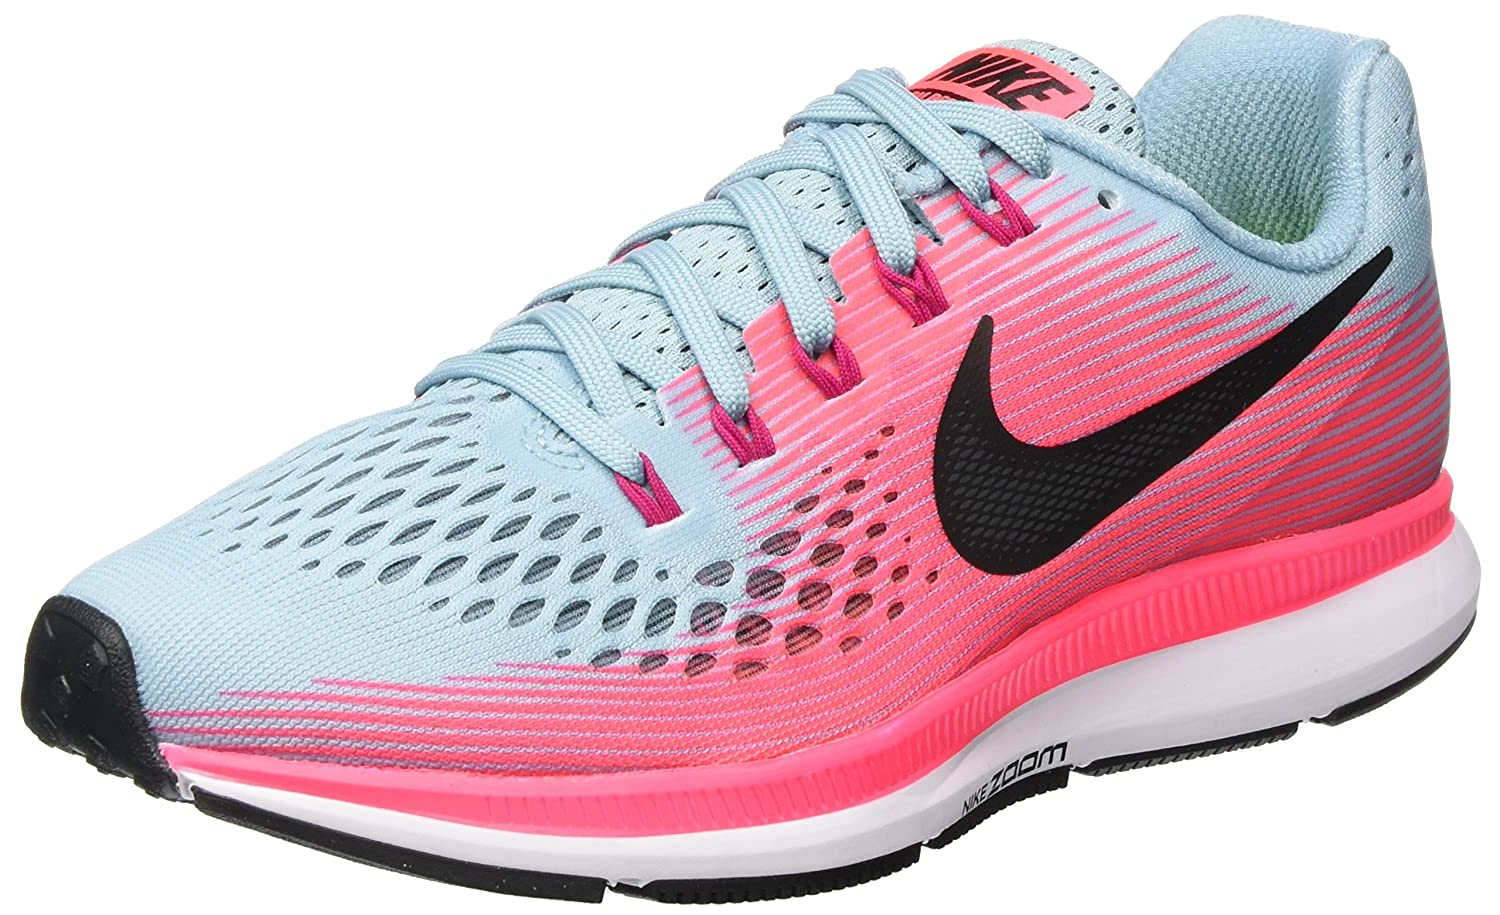 NIKE Women s Air Zoom Pegasus 34 Running Shoe MICA Blue White-Racer Pink-Sport Fuchsia, 8 M US